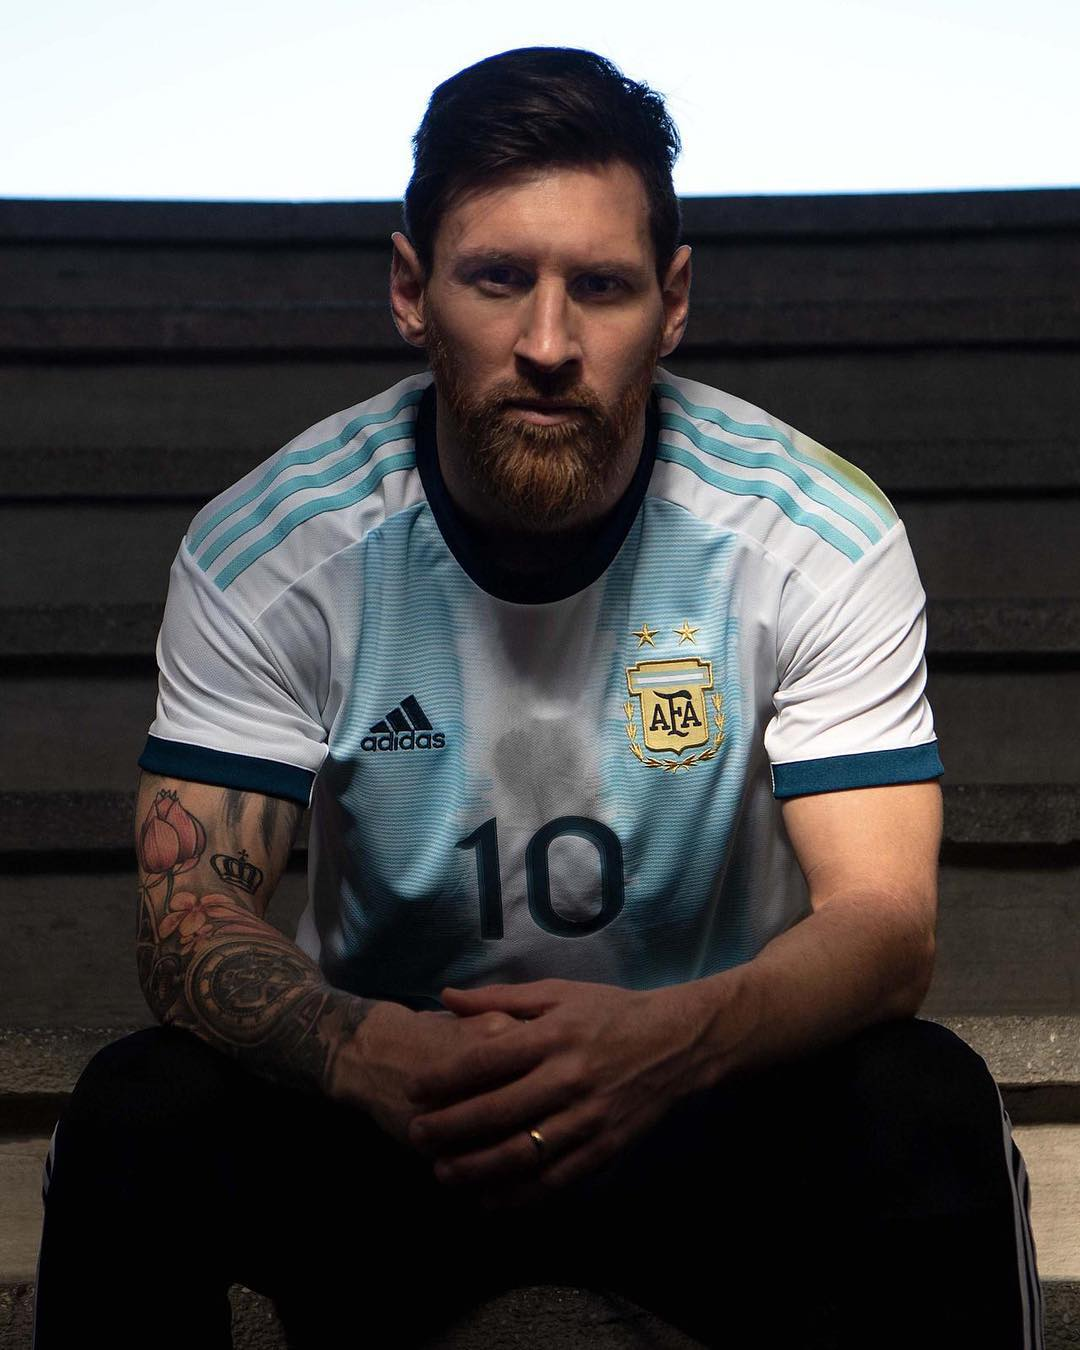 The Only Goal I Have Now Is To Win The World Cup – Messi